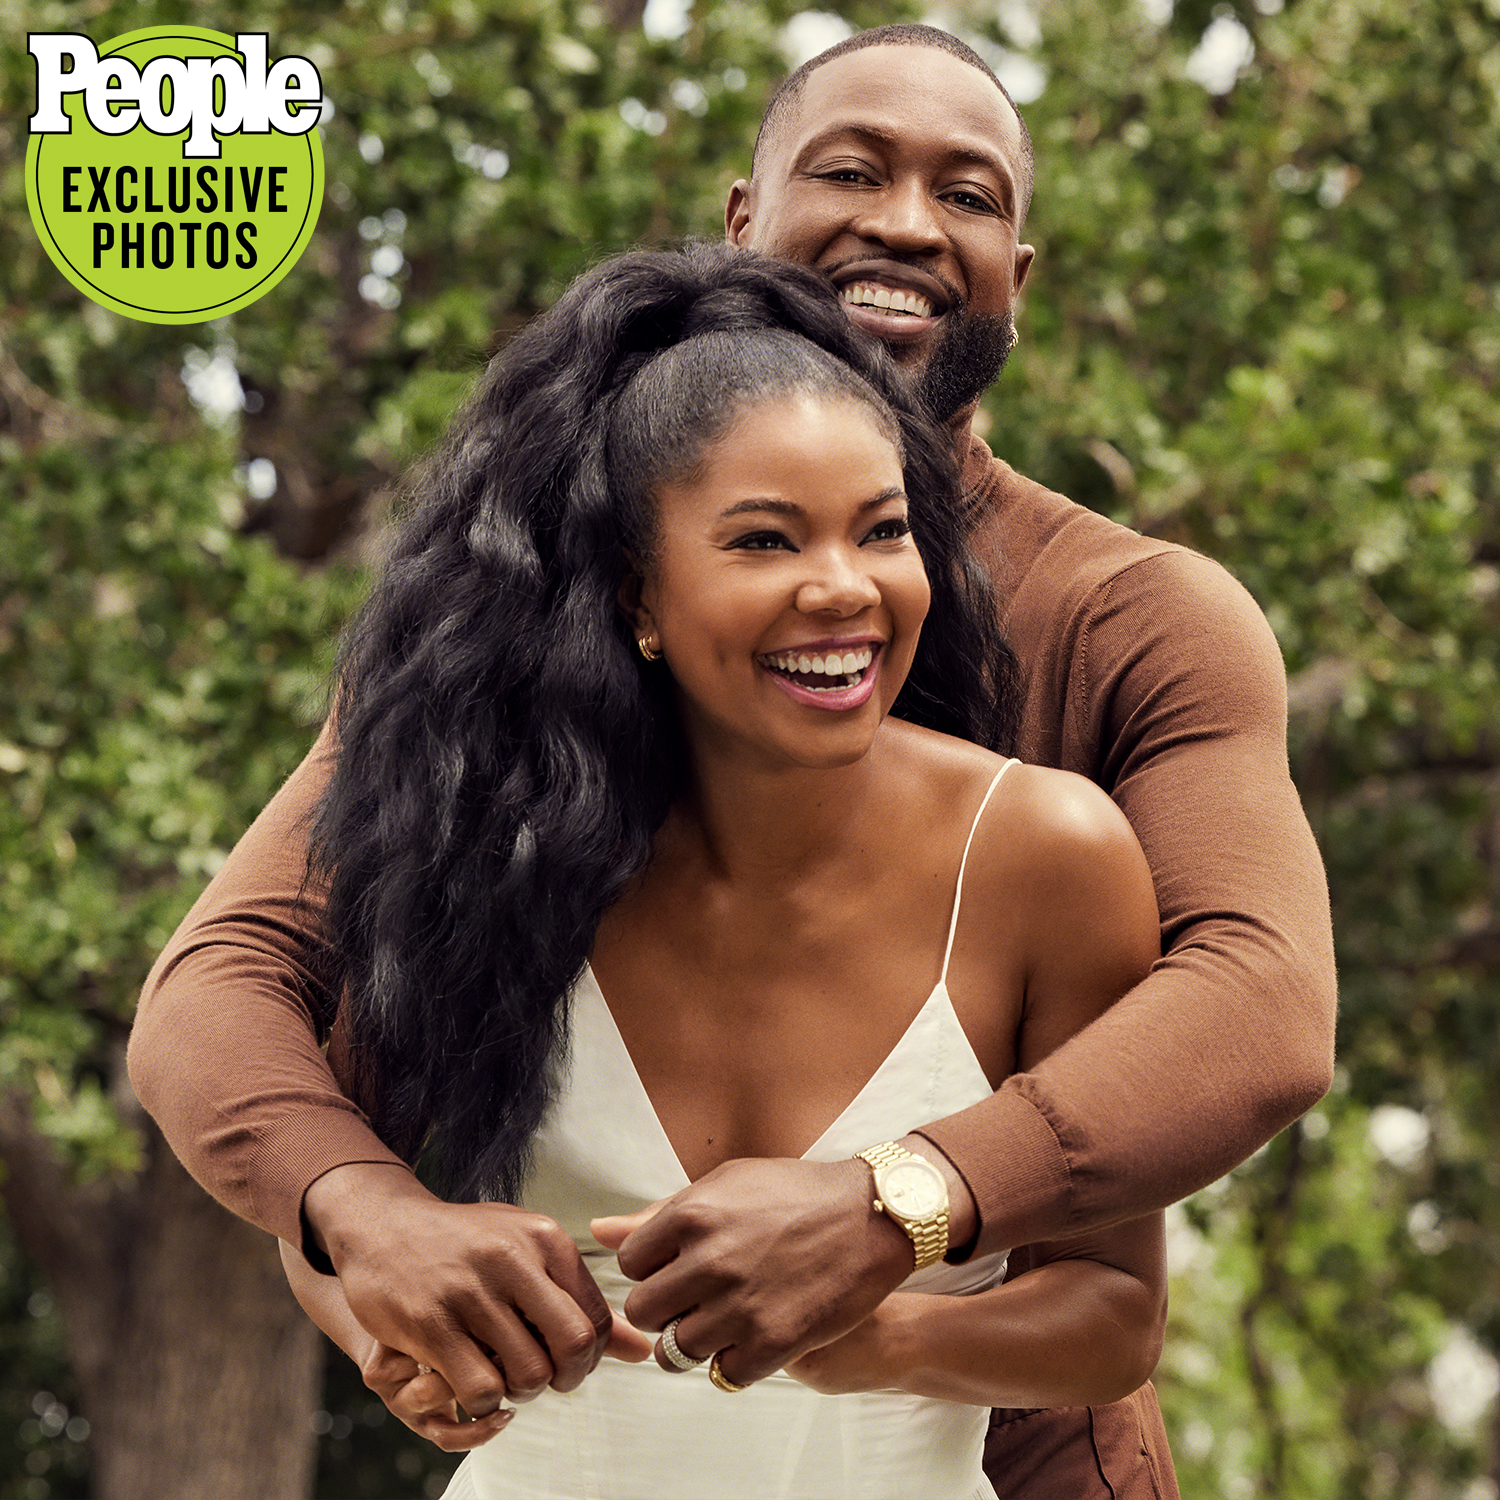 Dwyane Wade on What Makes His Marriage to Gabrielle Union Work: 'It's Not My Job to Change Who She Is'